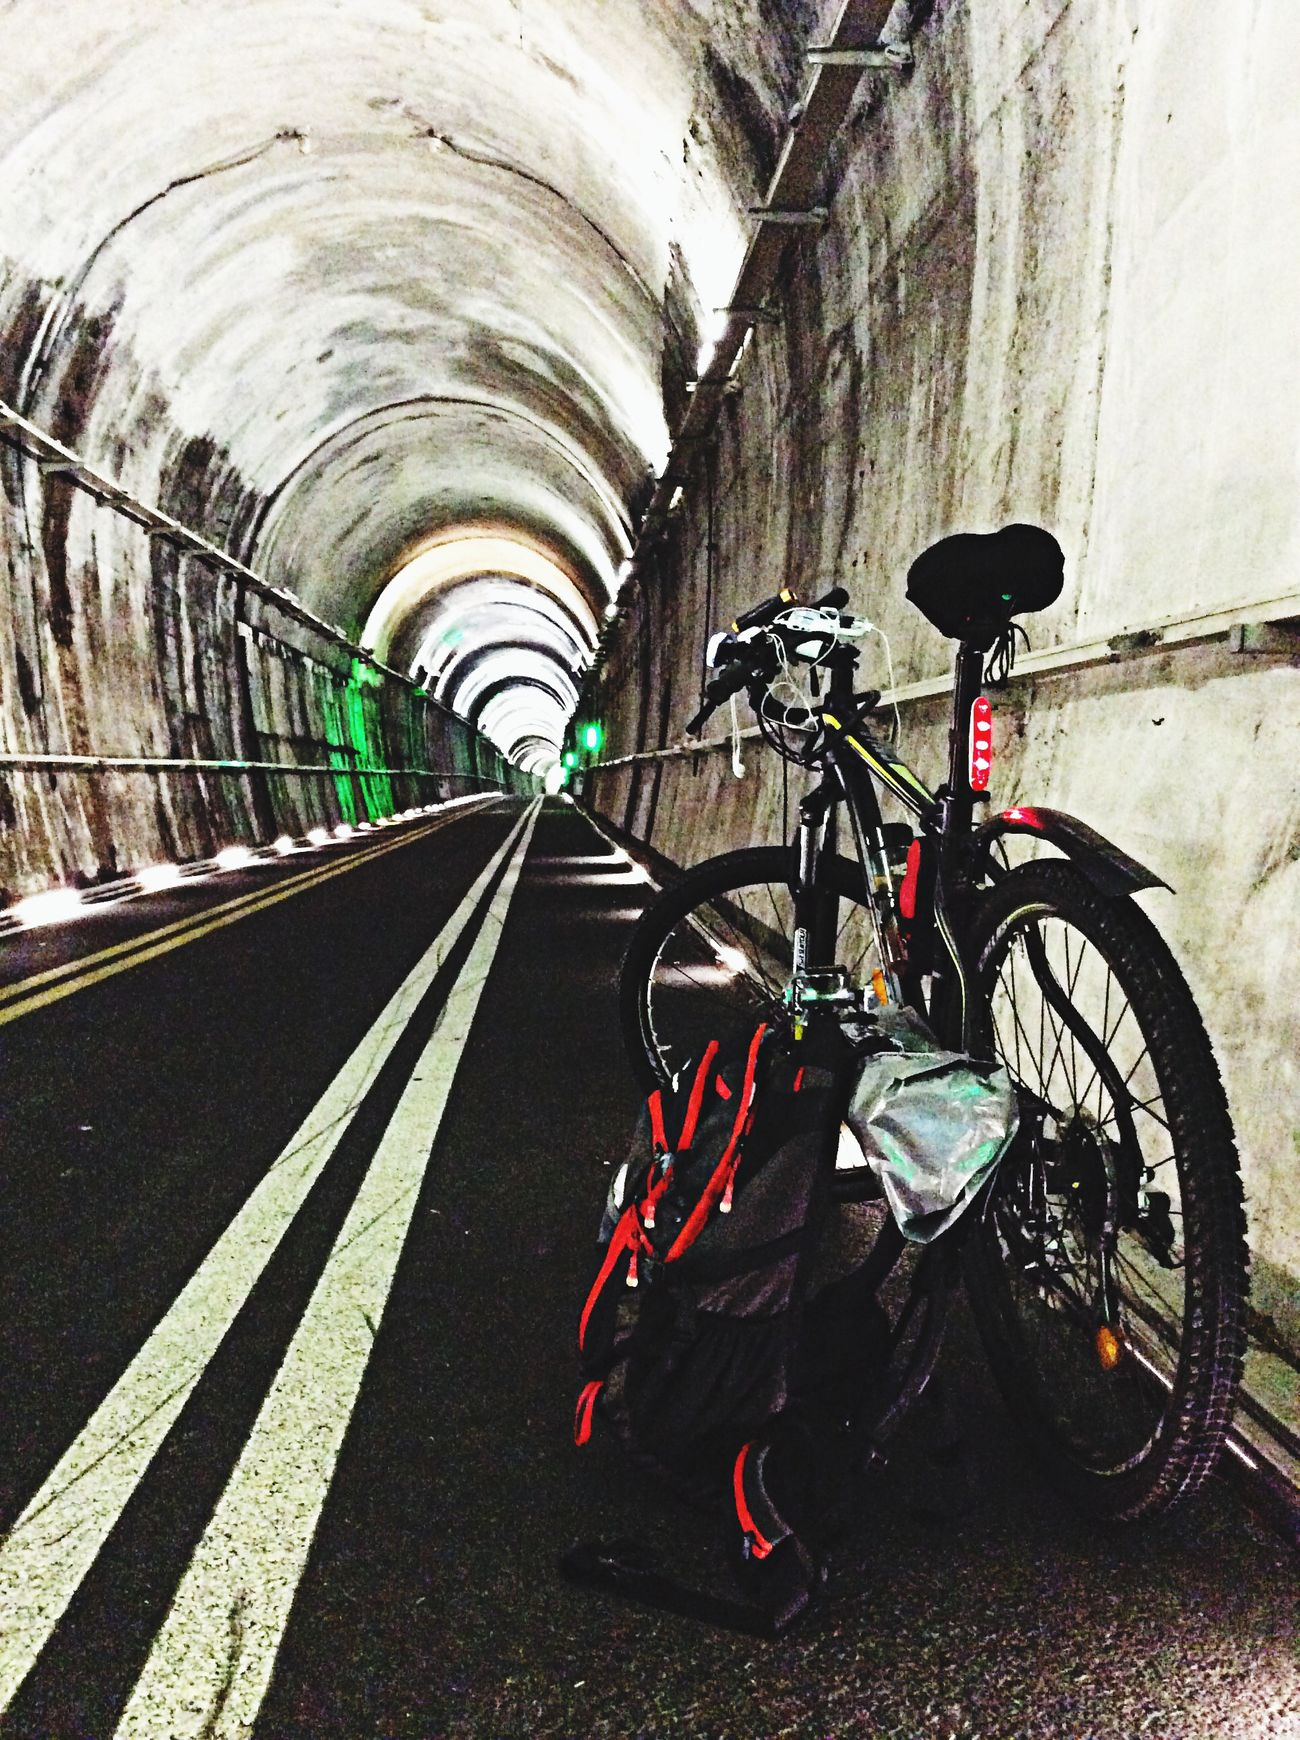 Riding Bike Tunnel